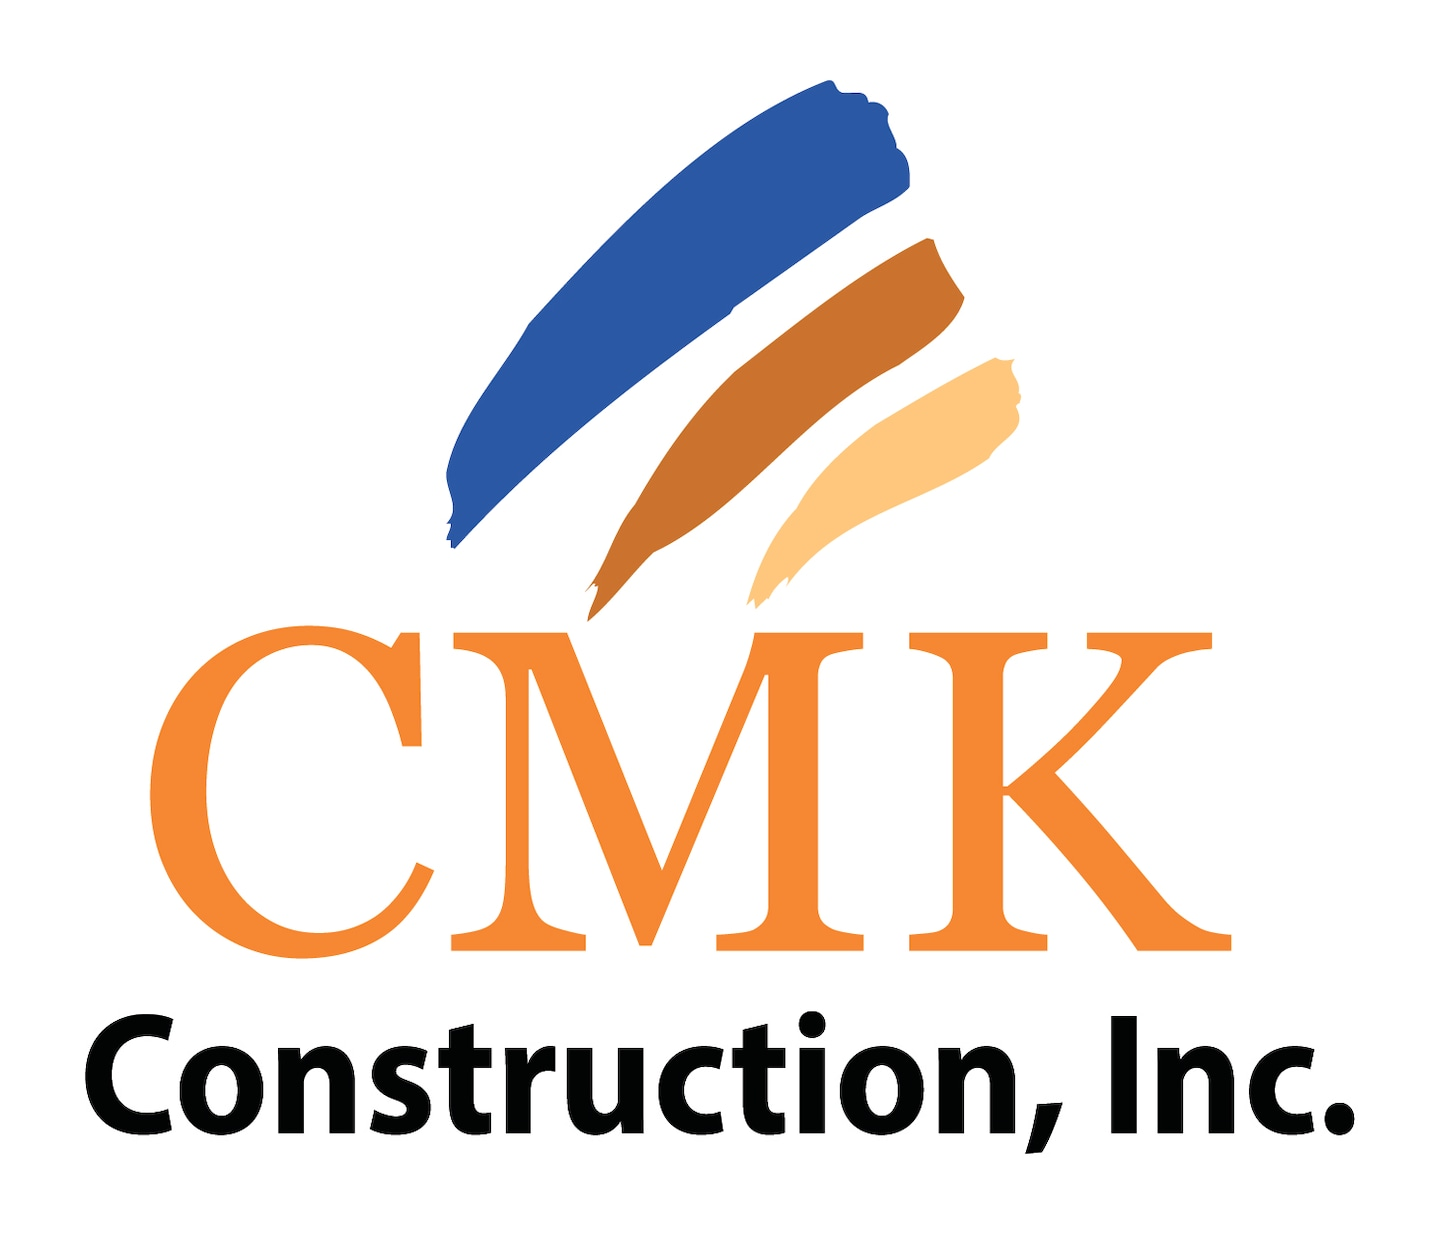 CMK Construction Inc